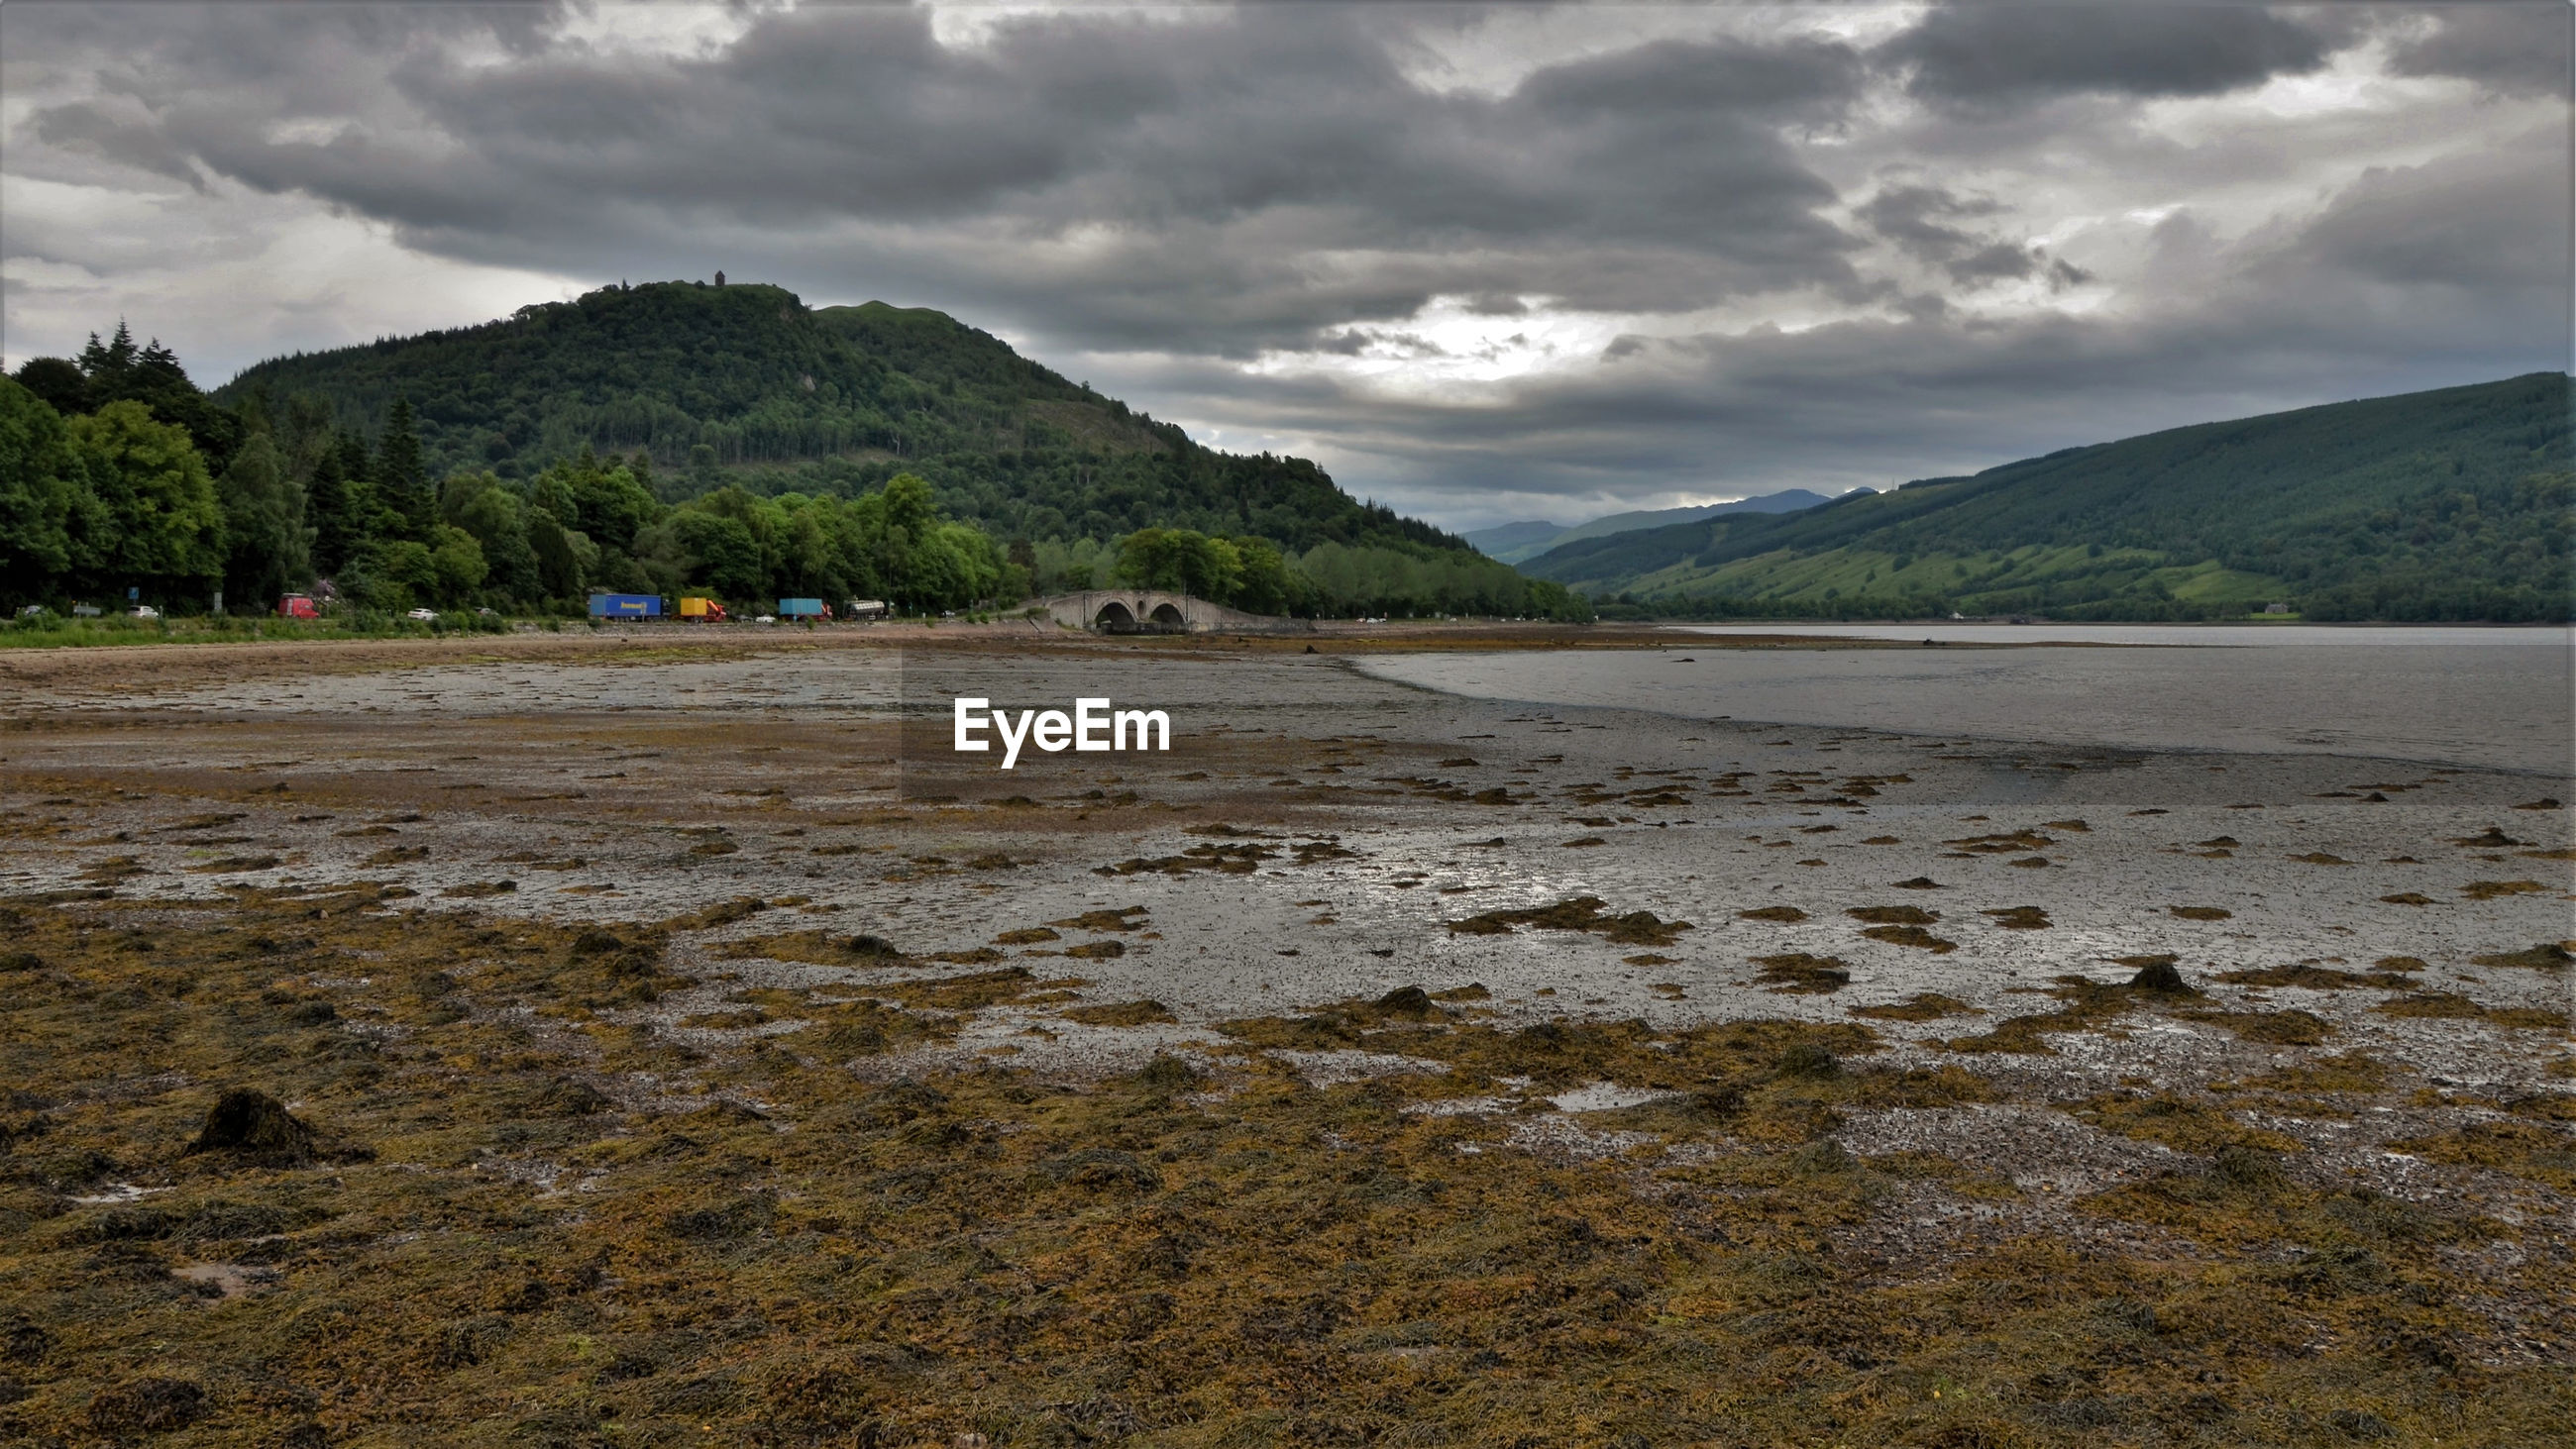 Scenic view of lake and mountains against cloudy sky, loch fyne, inveraray, scotland.